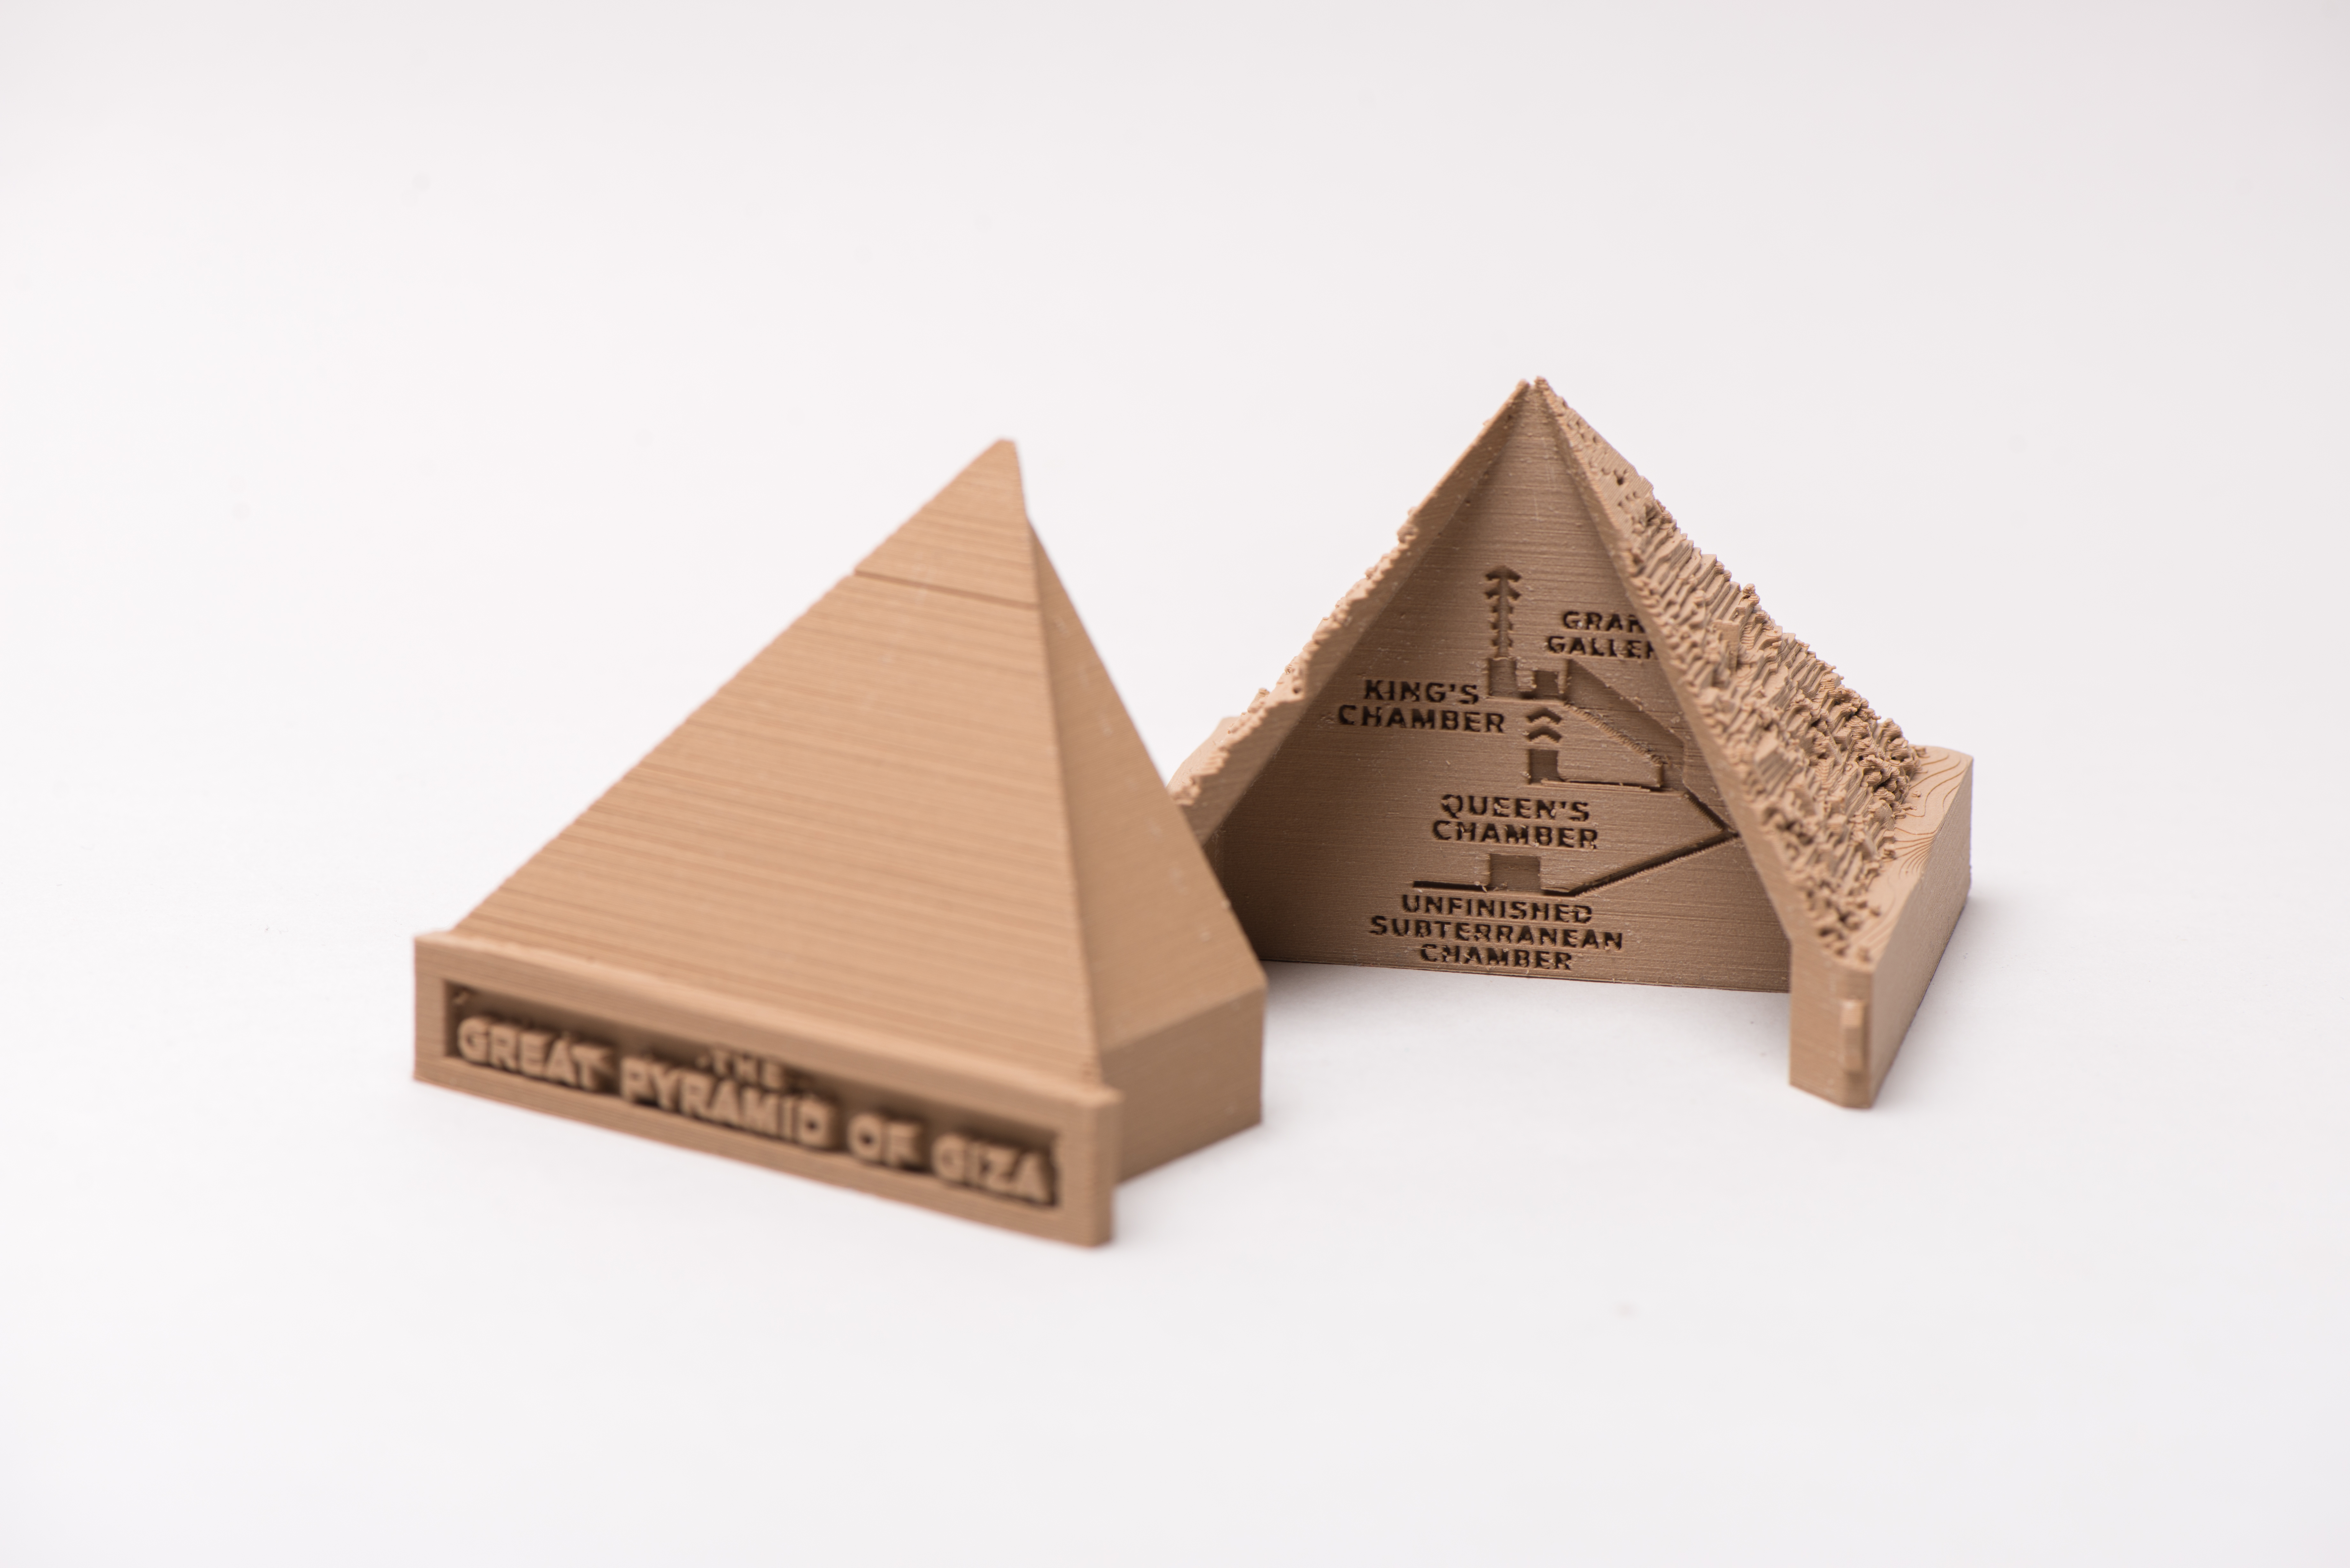 3D printed pyramid of giza on pla plastic